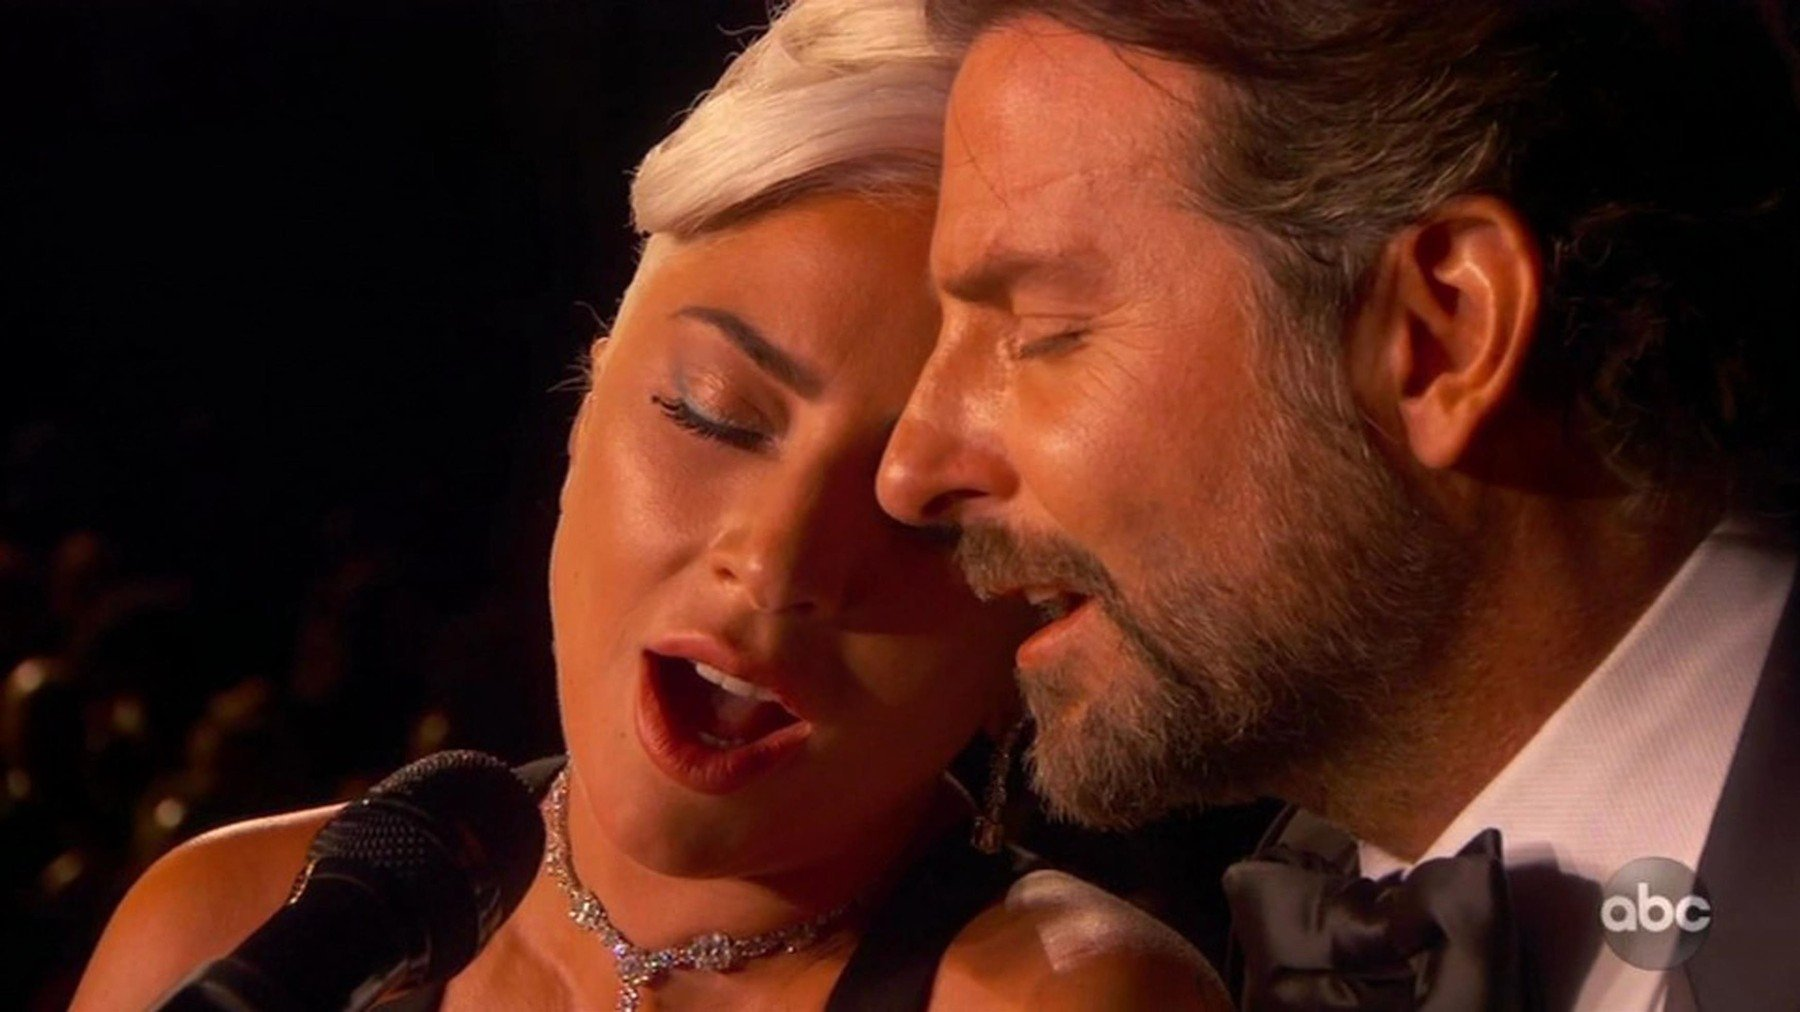 BGUK_1498052 - ** RIGHTS: WORLDWIDE EXCEPT IN UNITED STATES ** Los Angeles, CA  - Lady Gaga and Bradley Cooper perform emotional version of Shallow at the Oscars. Lady Gaga and Bradley Cooper dove into their first televised performance of Shallow at the 91st Academy Awards. The duo - both nominated as lead actors for their work in A Star Is Born - began the performance from their front-row seats in the audience, with Cooper (also the film's director) leading Gaga to the Dolby Theatre stage by the hand. They then launched into an emotional rendition of the film's signature hit, staring into each other's eyes from across a brown piano for most of the song until Cooper joined Gaga atop the piano bench for an intensely charged embrace to close out the number. A nine-time Grammy winner, Gaga additionally received the second and third Oscar nominations of her career for her contributions to A Star Is Born: one for Best Actress and the other for co-writing Shallow with Mark Ronson, Miike Snow's Andrew Wyatt, and Anthony Rossomando.  *BACKGRID DOES NOT CLAIM ANY COPYRIGHT OR LICENSE IN THE ATTACHED MATERIAL. ANY DOWNLOADING FEES CHARGED BY BACKGRID ARE FOR BACKGRID'S SERVICES ONLY, AND DO NOT, NOR ARE THEY INTENDED TO, CONVEY TO THE USER ANY COPYRIGHT OR LICENSE IN THE MATERIAL. BY PUBLISHING THIS MATERIAL , THE USER EXPRESSLY AGREES TO INDEMNIFY AND TO HOLD BACKGRID HARMLESS FROM ANY CLAIMS, DEMANDS, OR CAUSES OF ACTION ARISING OUT OF OR CONNECTED IN ANY WAY WITH USER'S PUBLICATION OF THE MATERIAL*  Pictured: Lady Gaga, Bradley Cooper  BACKGRID UK 24 FEBRUARY 2019, Image: 415753885, License: Rights-managed, Restrictions: , Model Release: no, Credit line: Profimedia, Backgrid UK